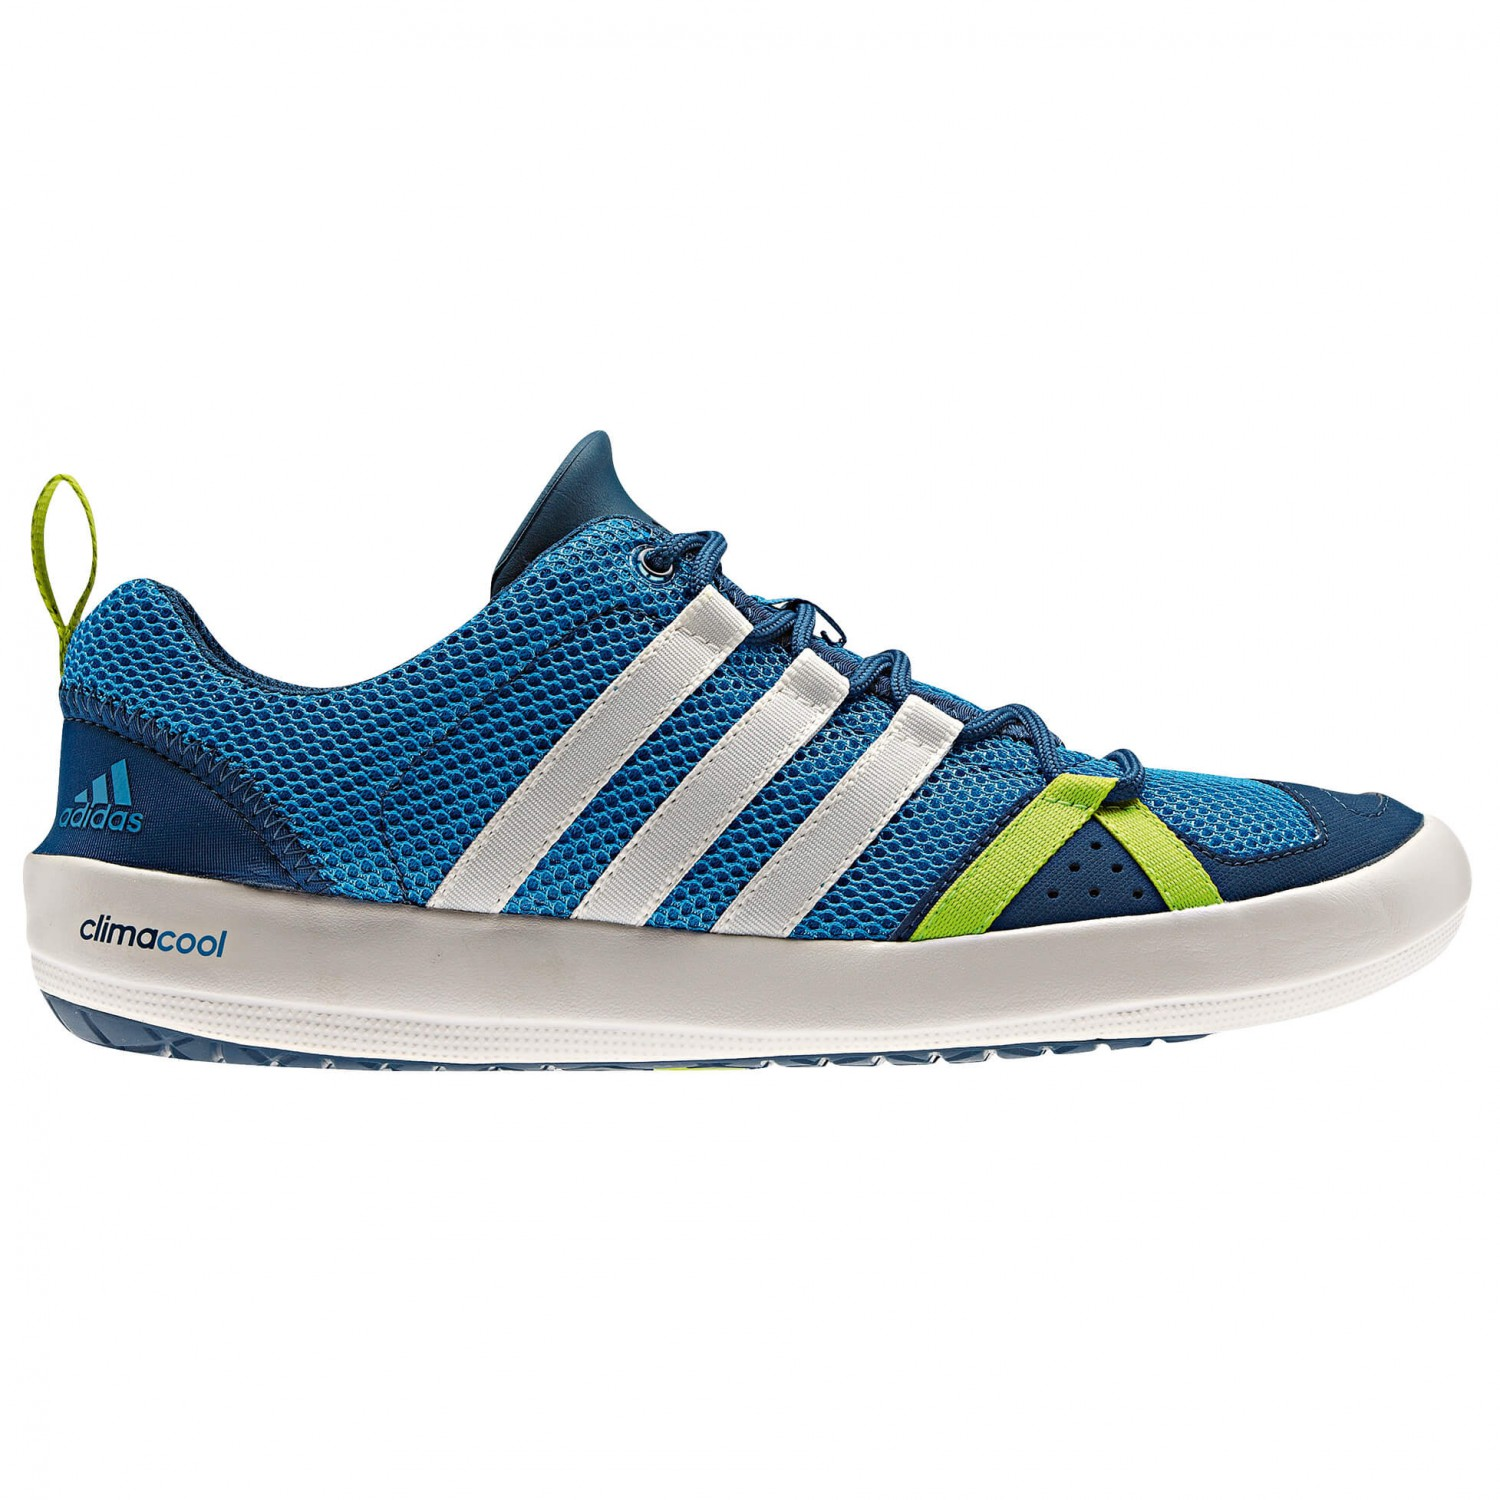 uk availability a519d 7d8f7 Adidas Climacool Boat Lace - Water Shoes   Buy online   Alpinetrek.co.uk